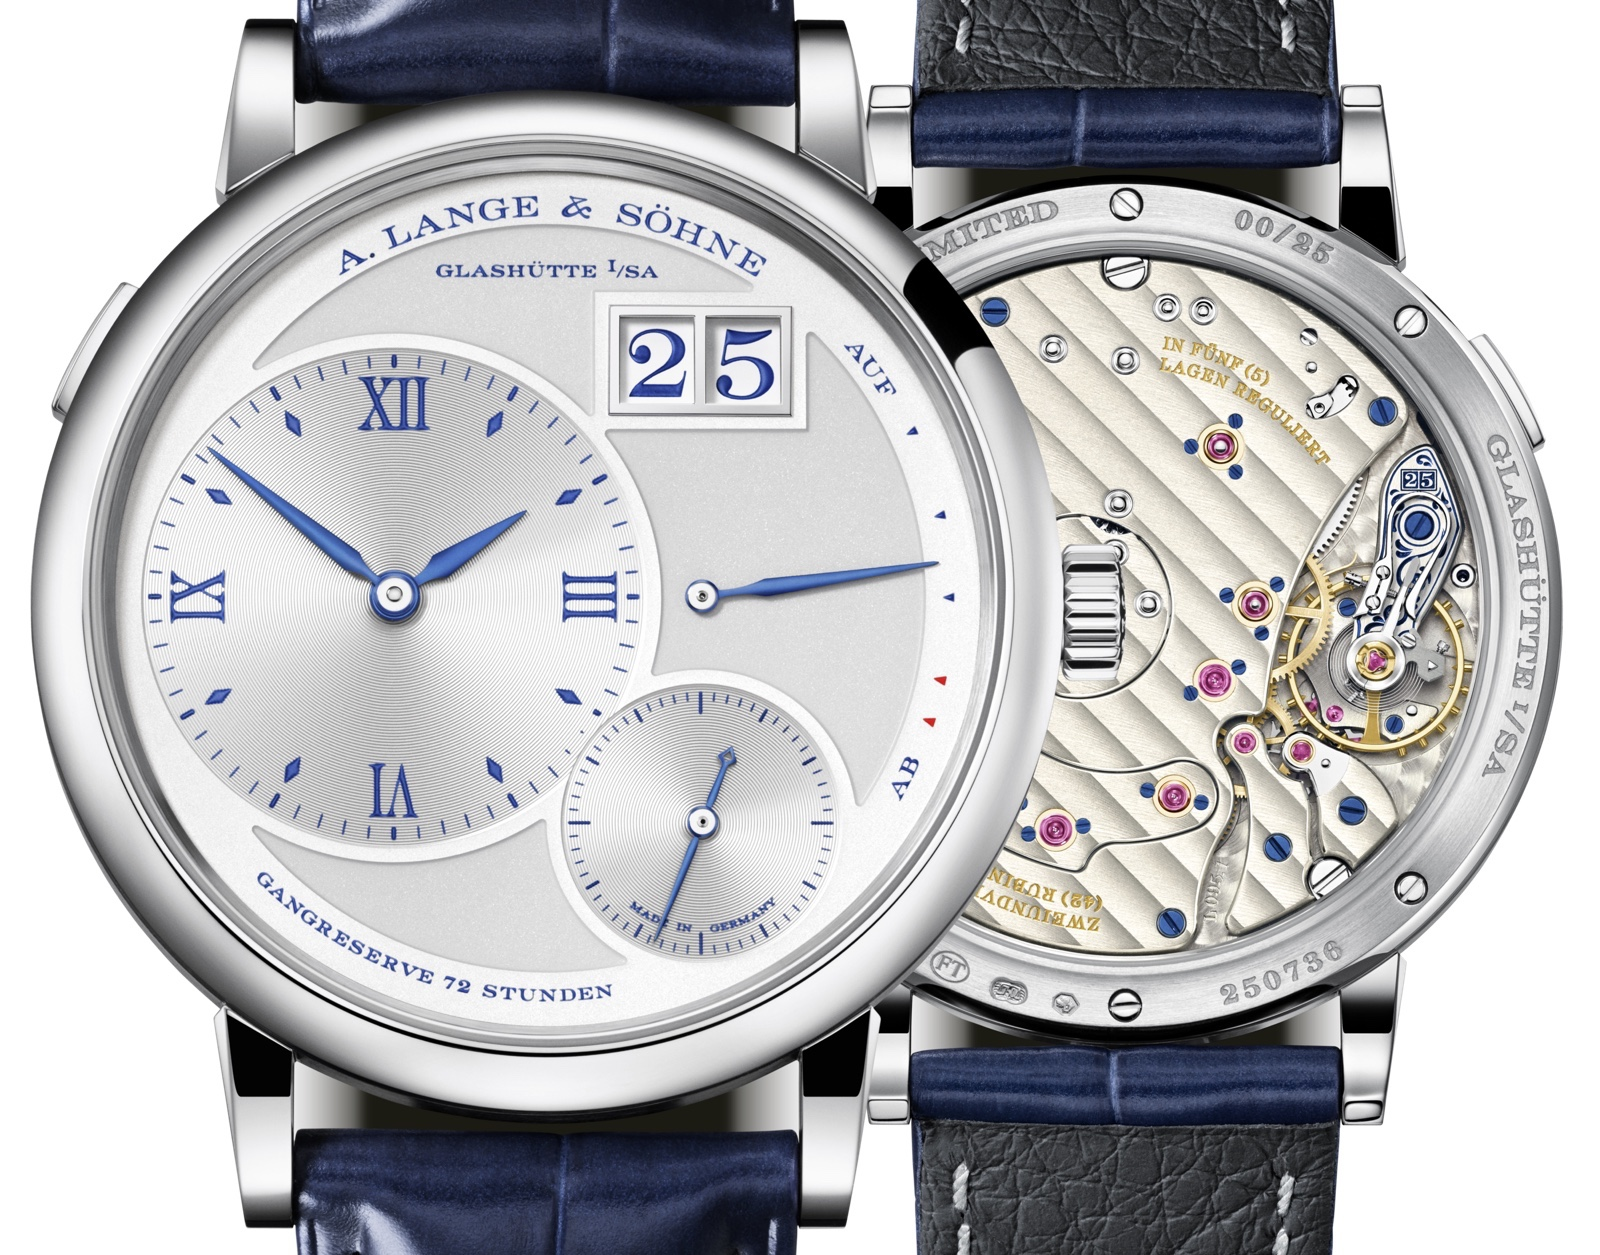 Grand Lange 1 25th Anniversary Vistas